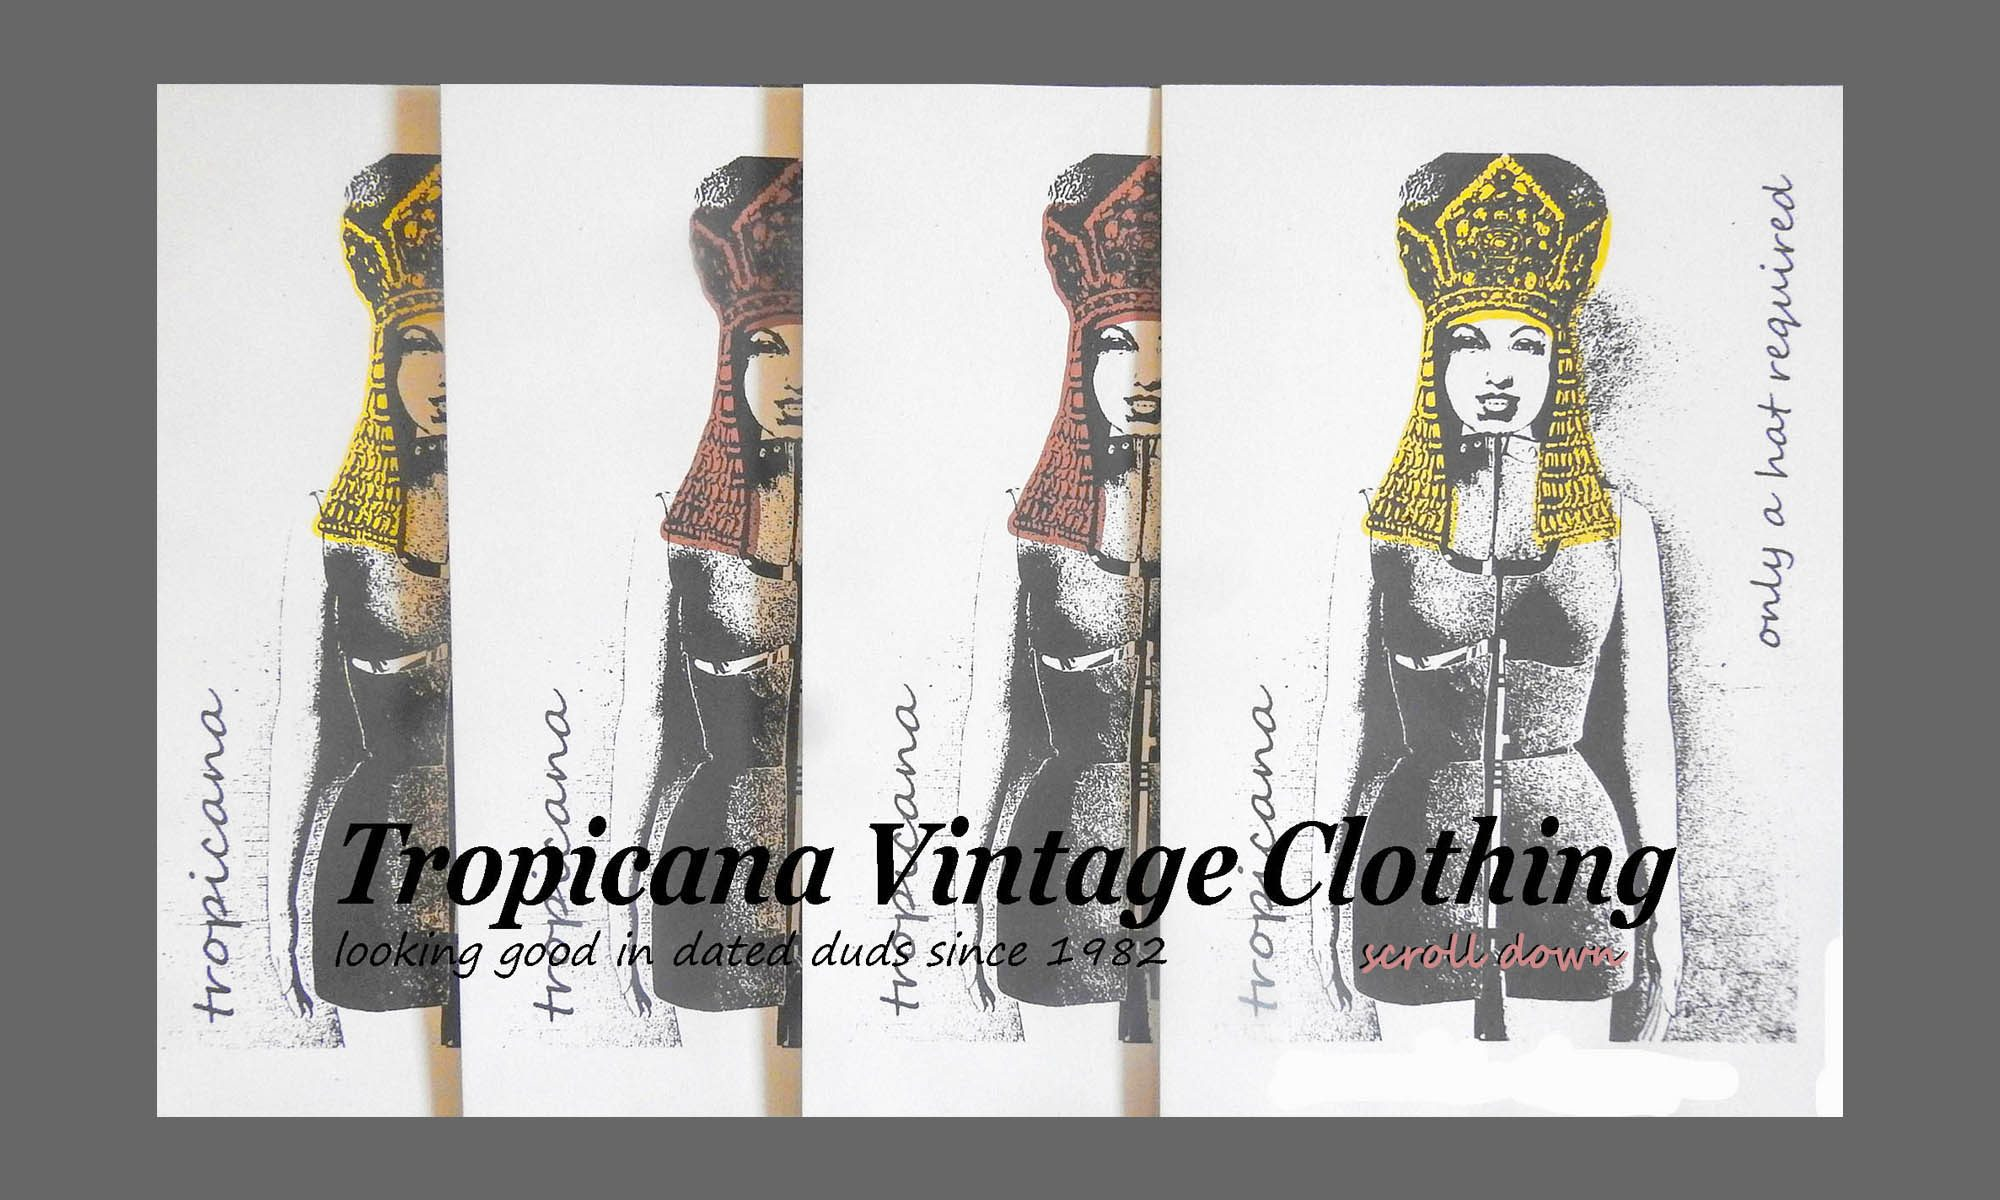 Tropicana Vintage Clothing